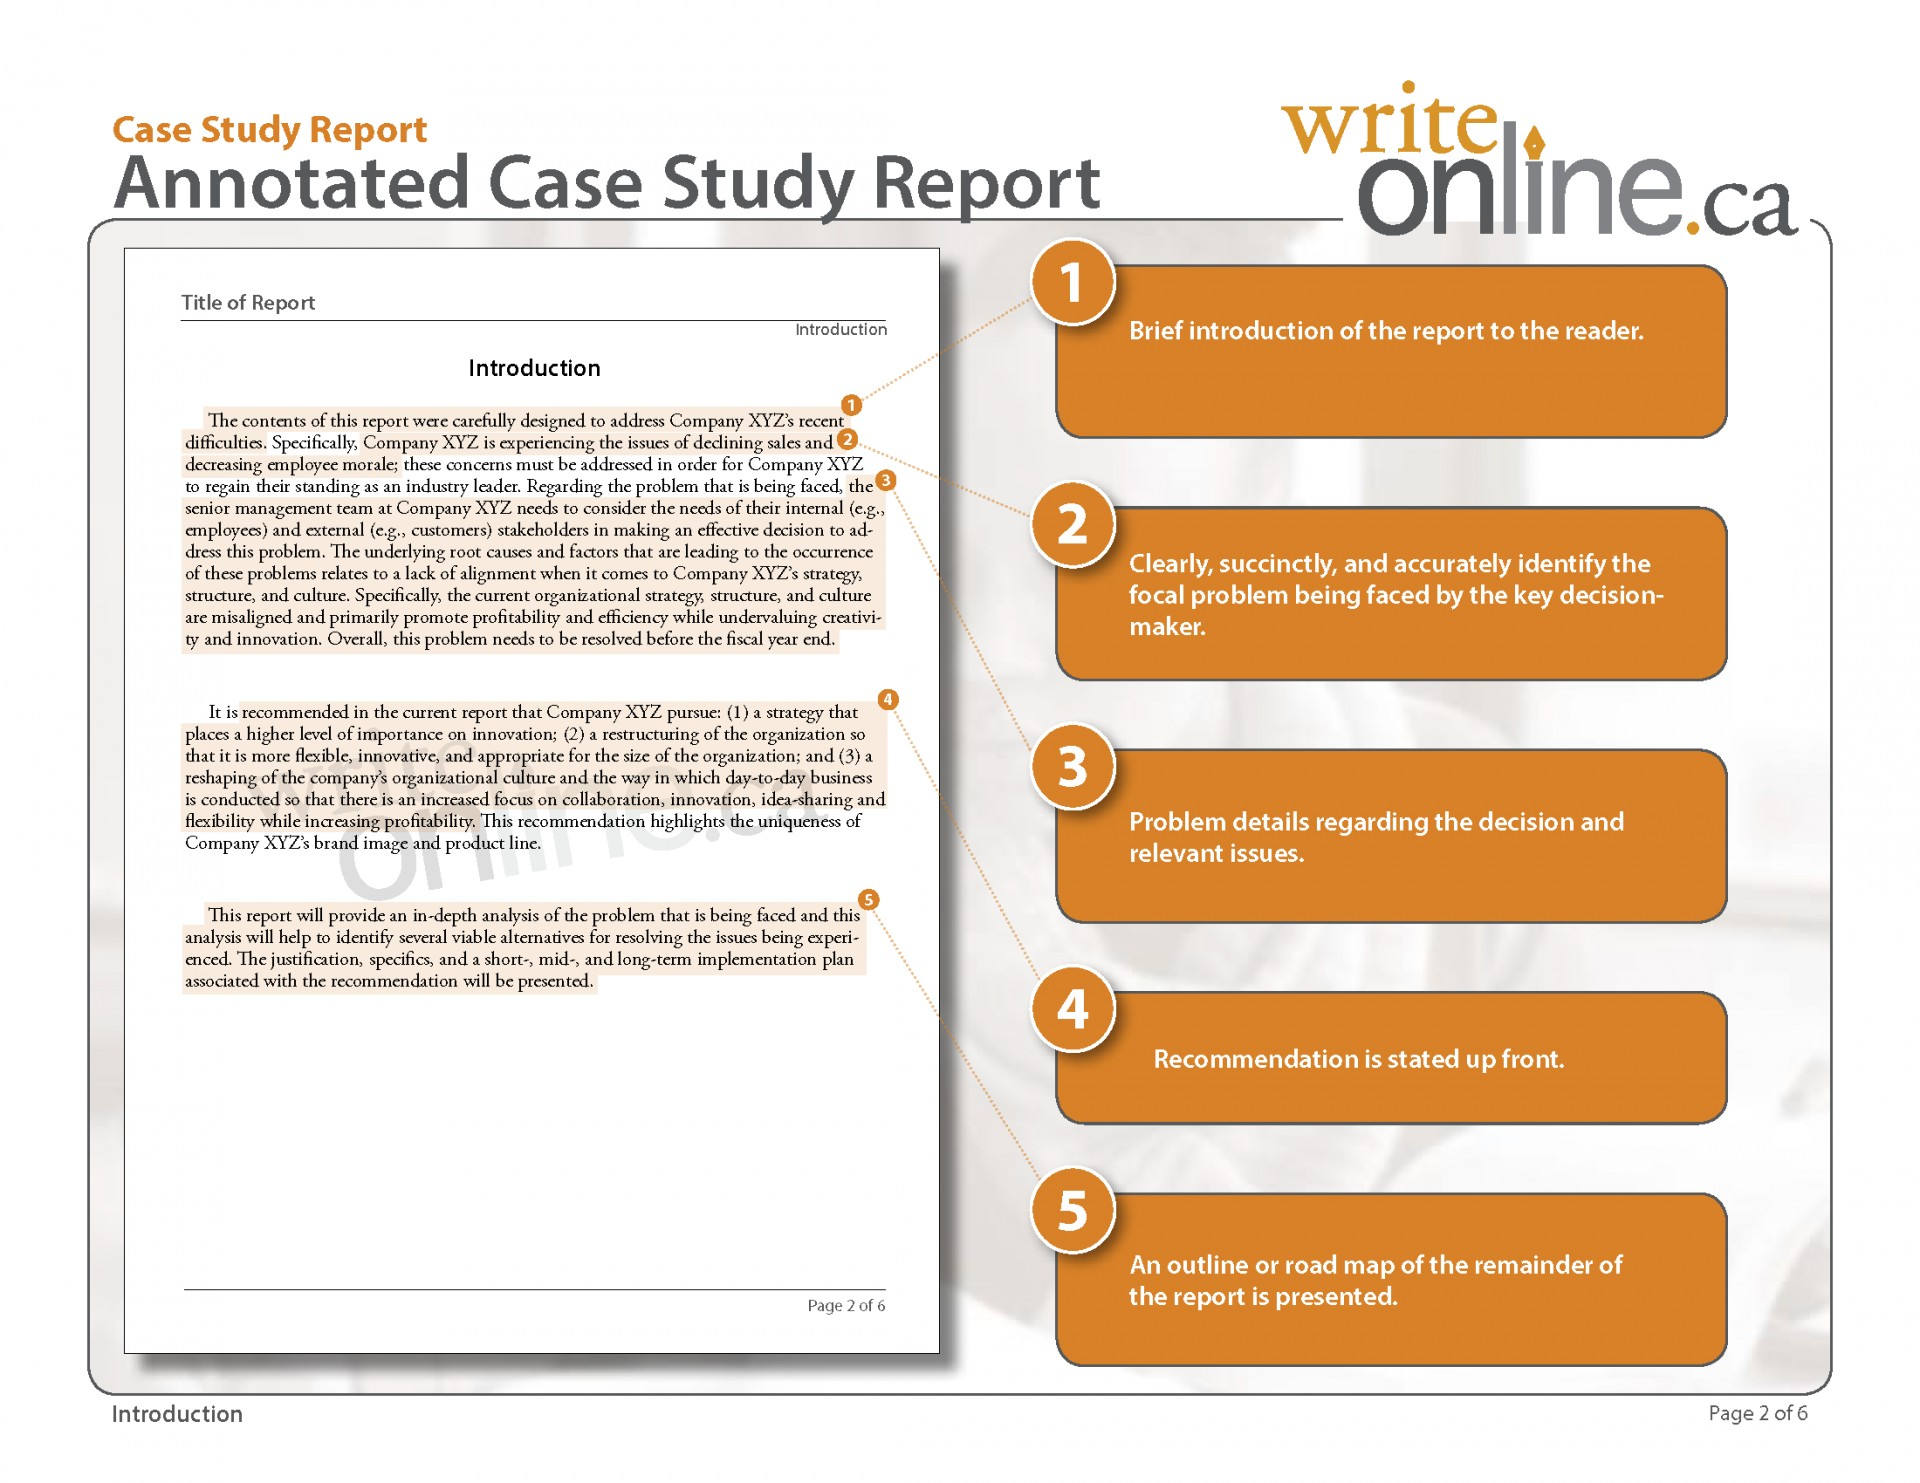 017 How To Write The Introduction Of Research Paper Pdf Casestudy Annotatedfull Page 2 Imposing A An For Sample 1920